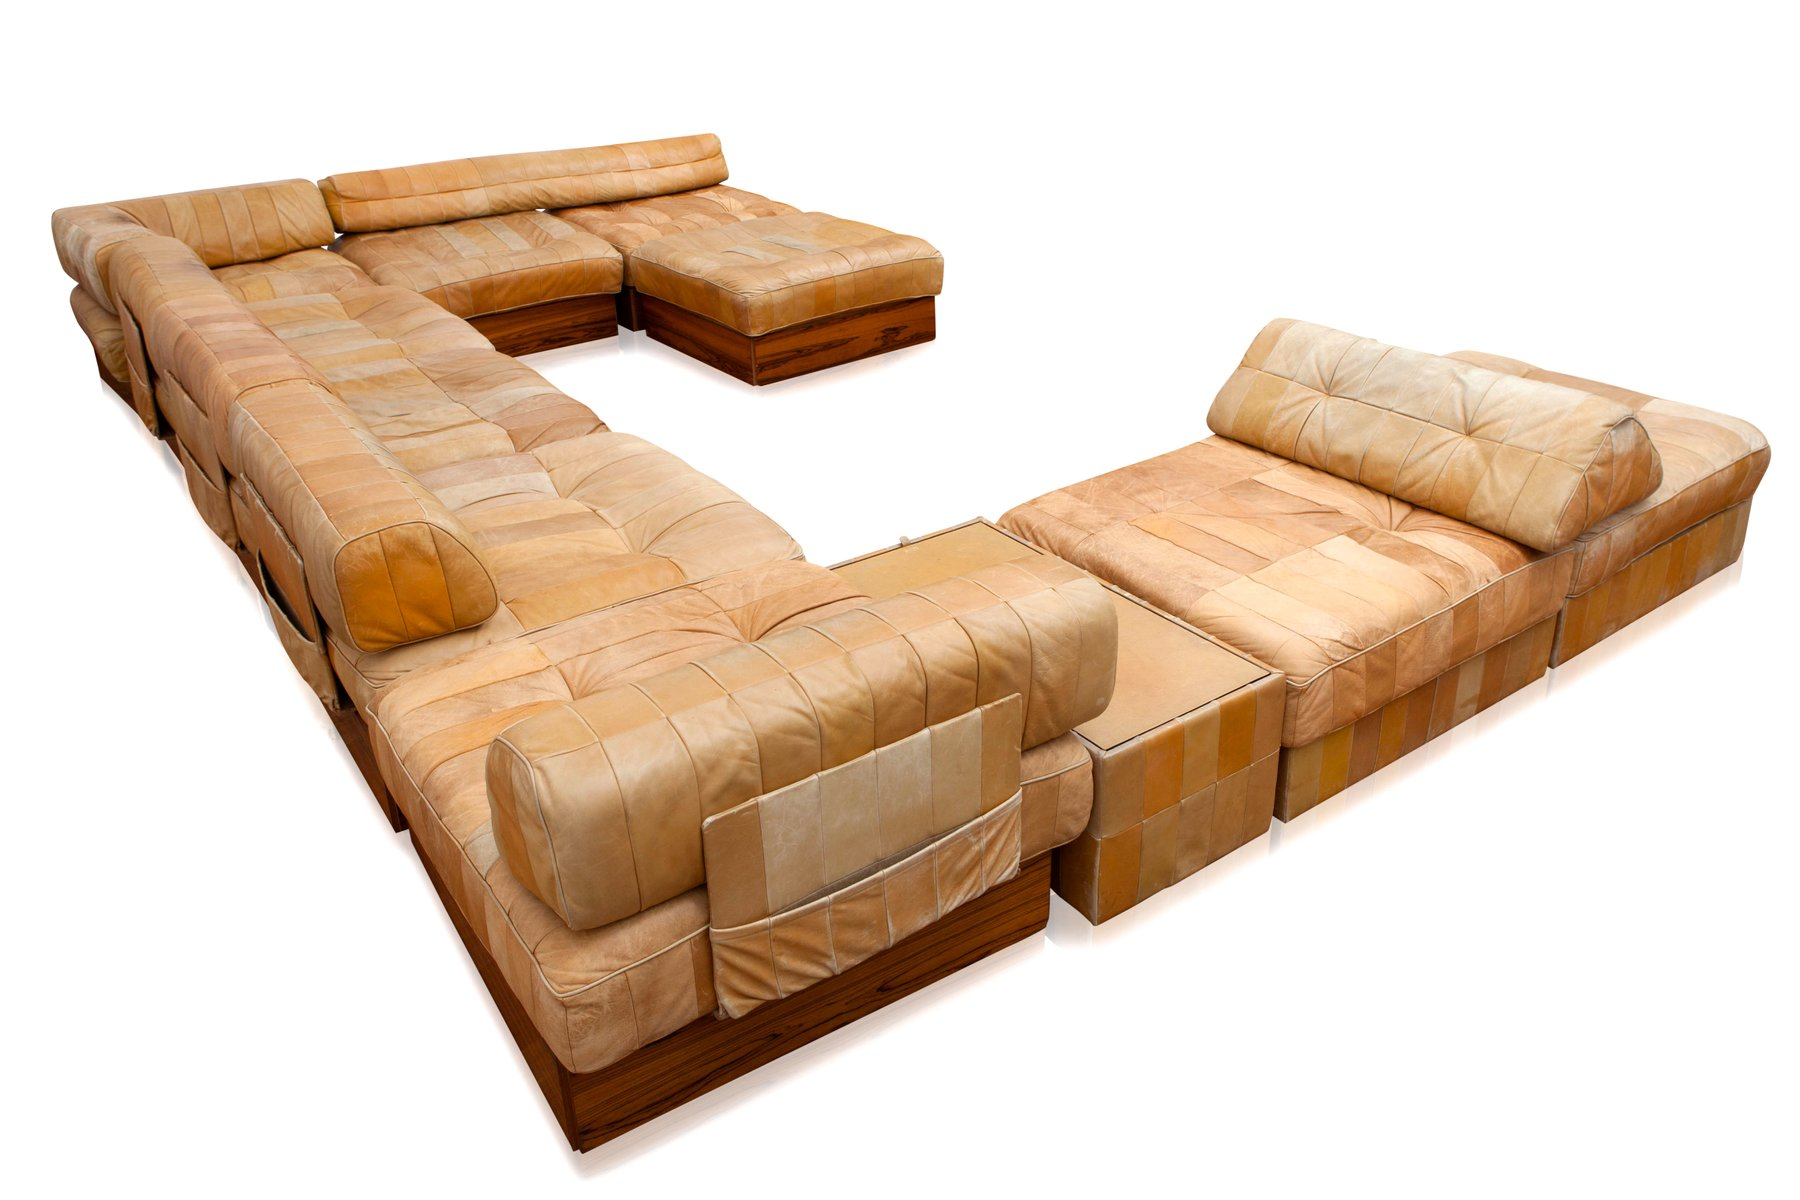 mid century ds 88 landscape sofa from de sede 1970s for sale at pamono. Black Bedroom Furniture Sets. Home Design Ideas